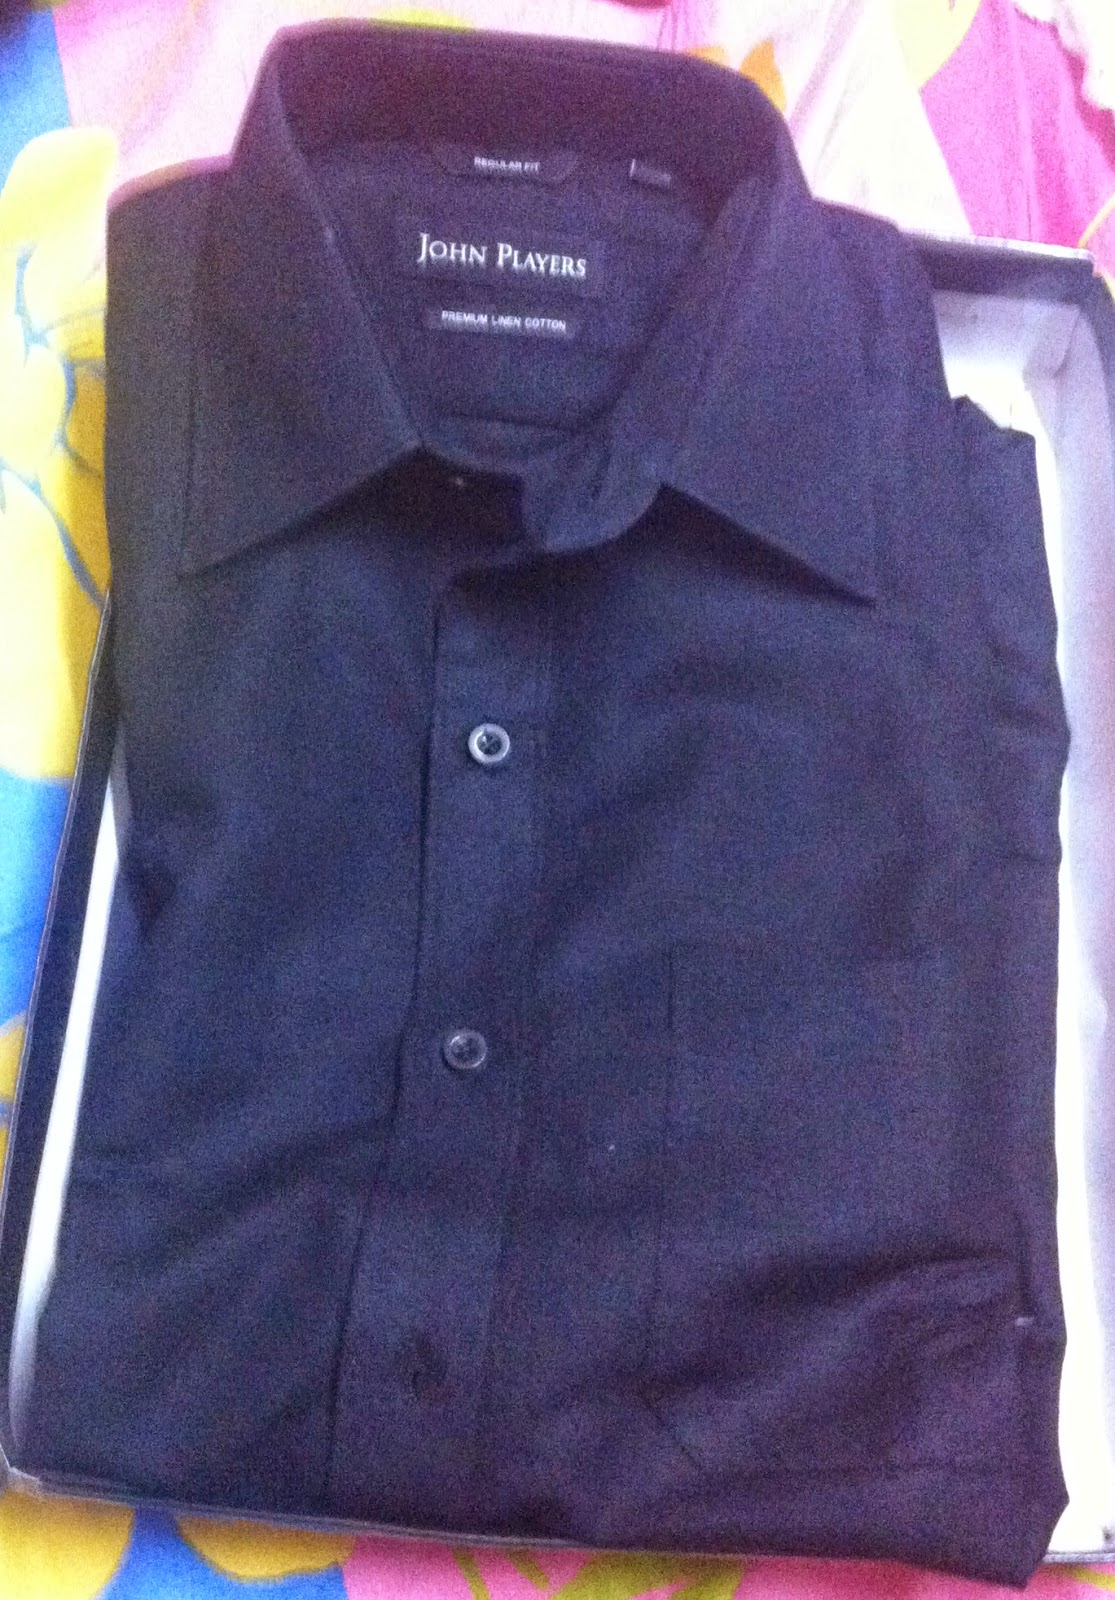 Formal black shirt from Jabong